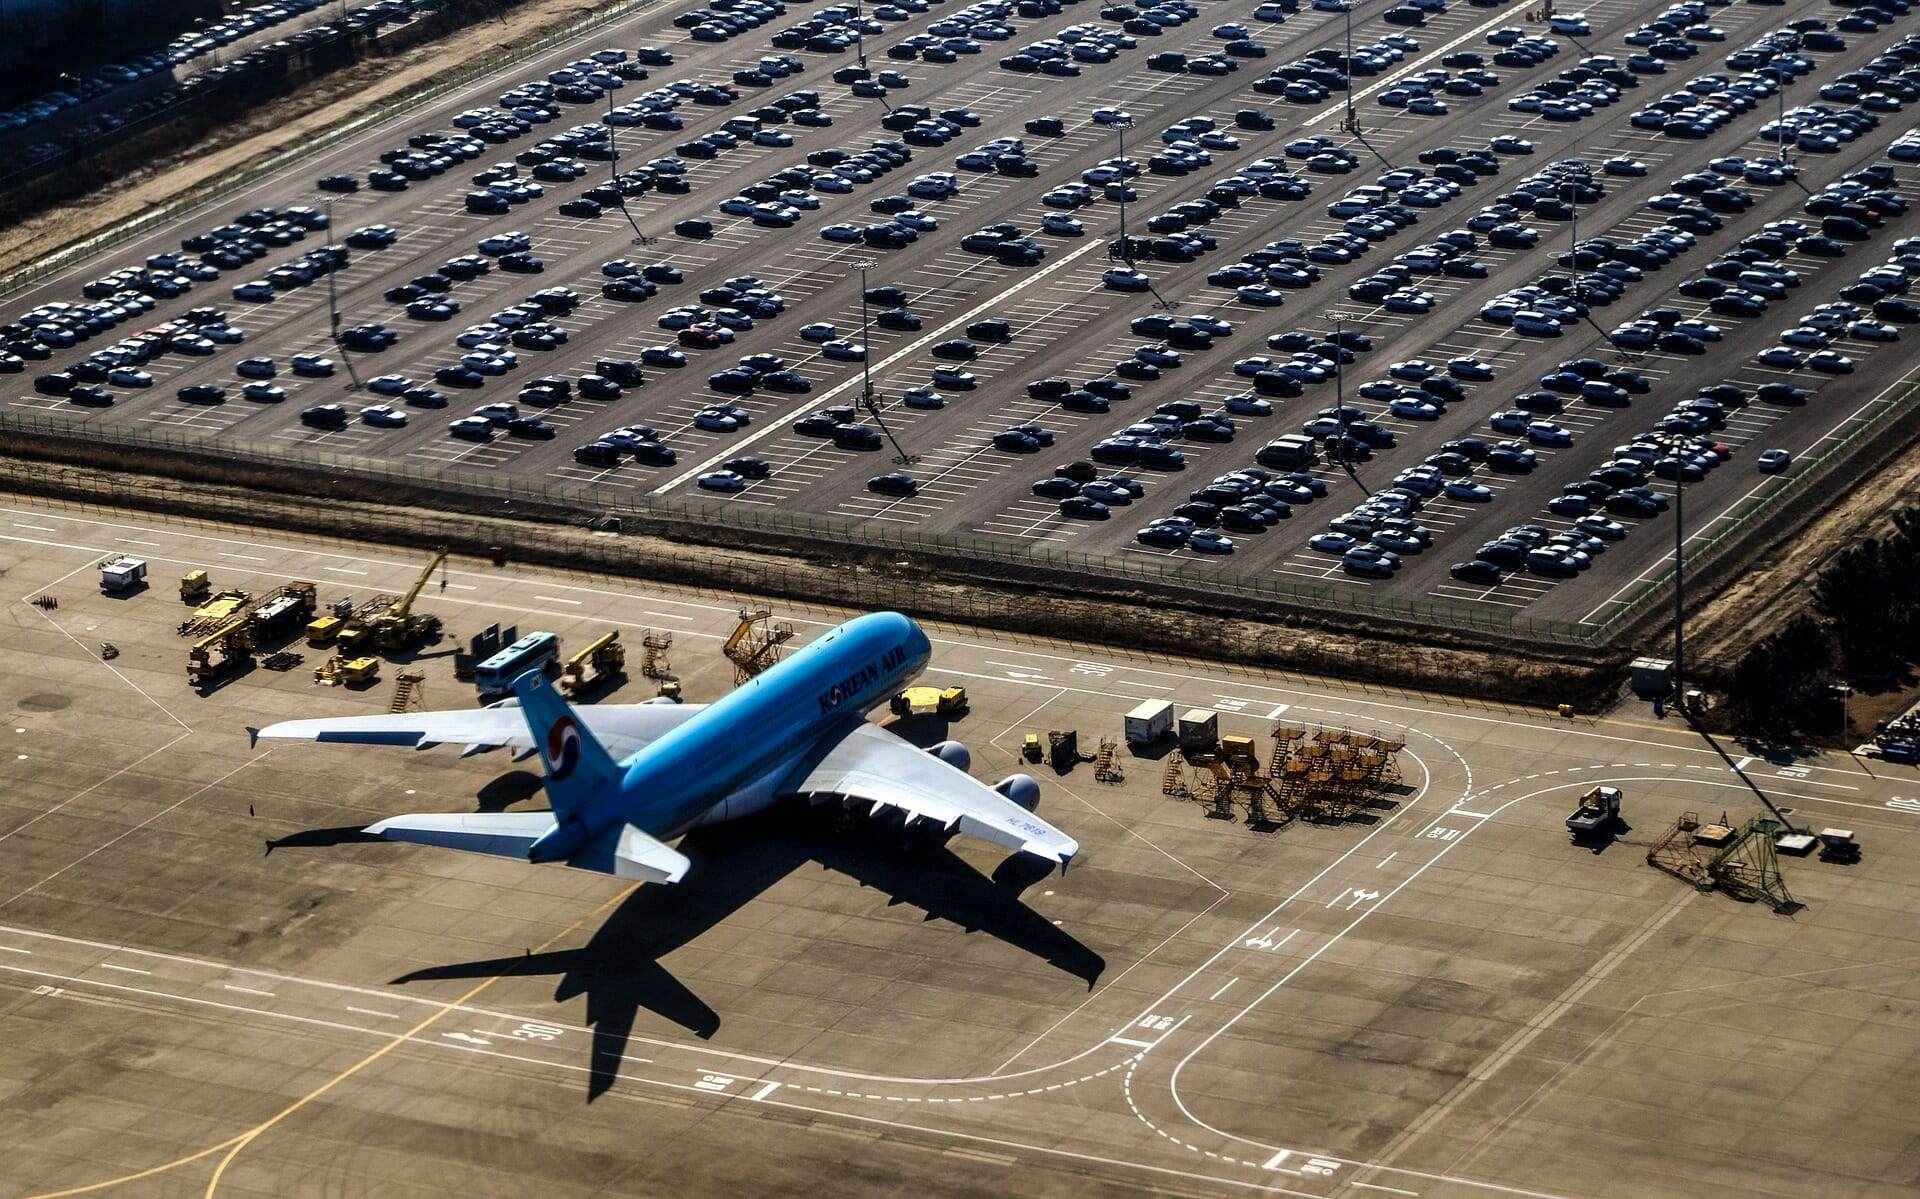 Get Ready for Takeoff!: 5 Advantages of Using the ParkMobile App for Airport Parking